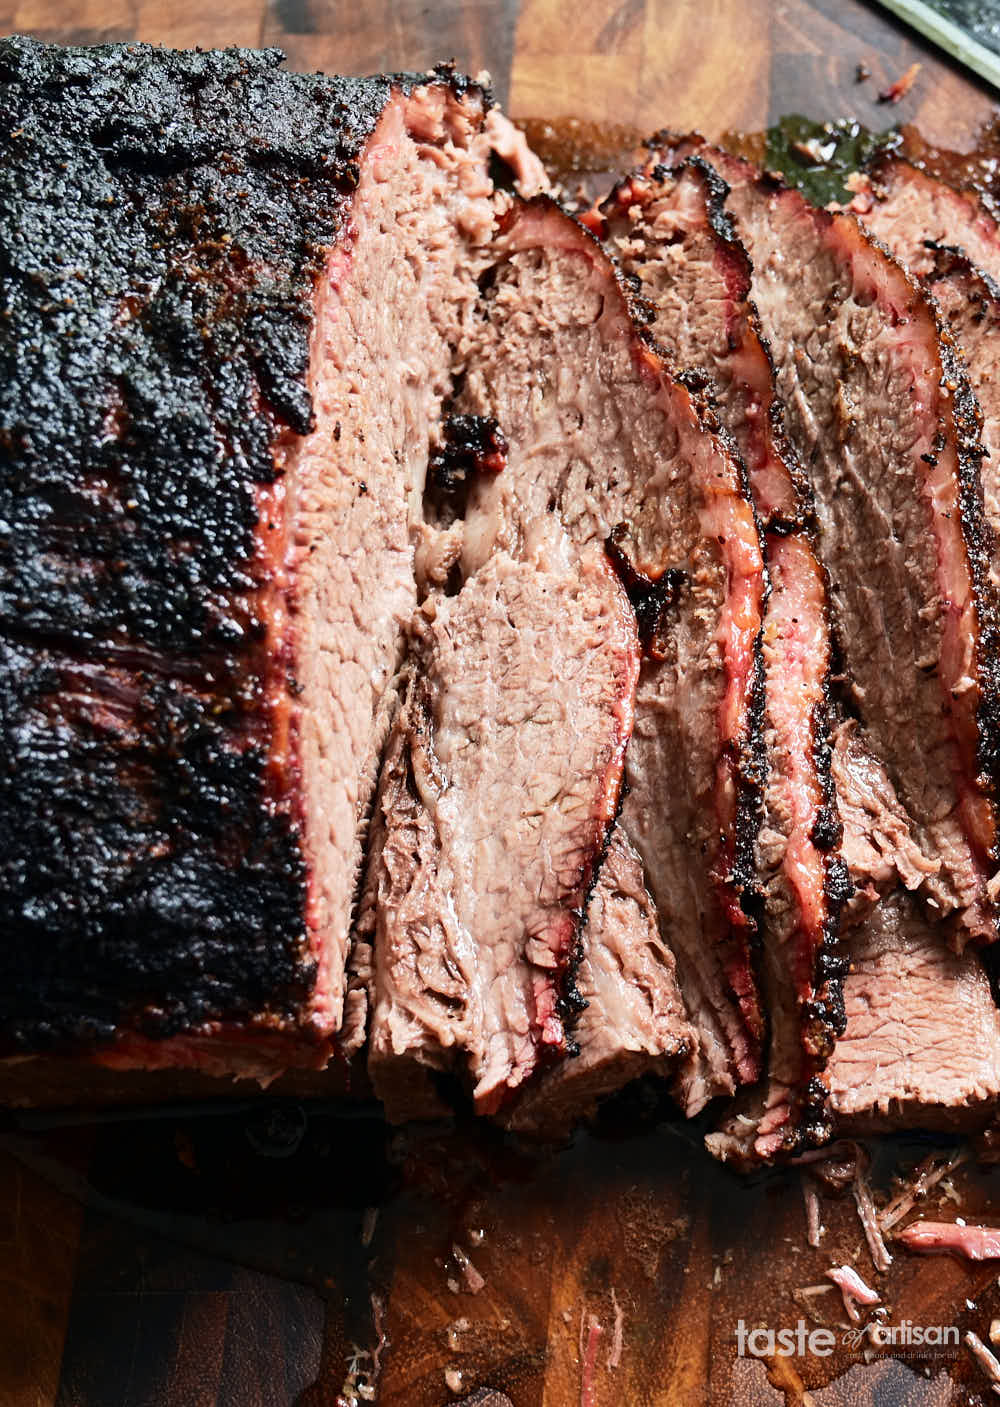 Super juicy smoked brisket slices on a cutting board